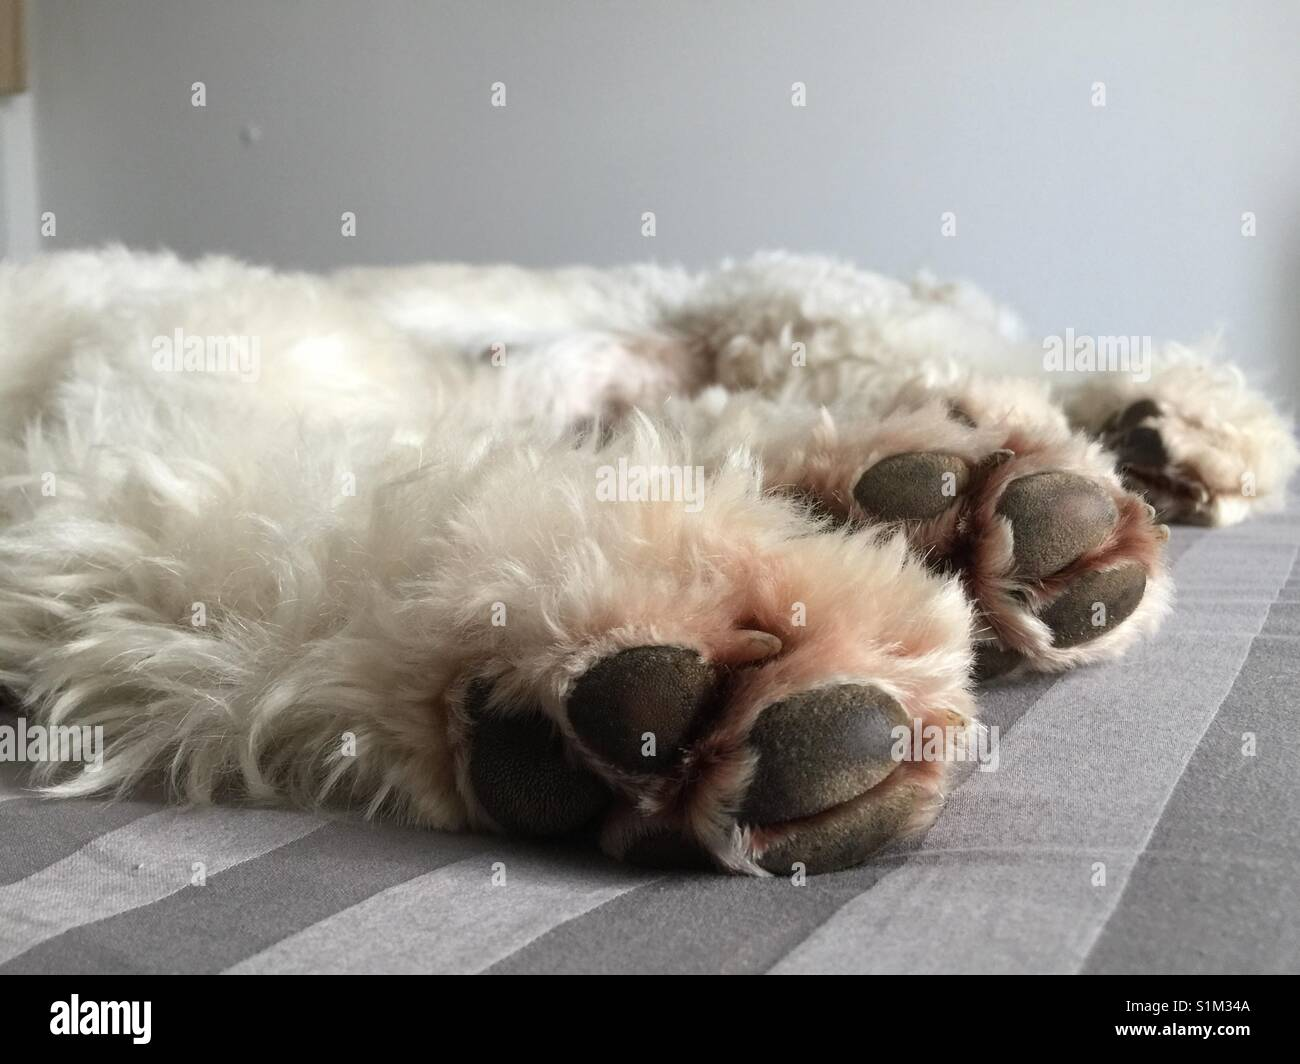 White dog with black paws looking like a polar bear lying in a bed on grey sheets. Weisser Hund, goldendoodle liegt Stock Photo